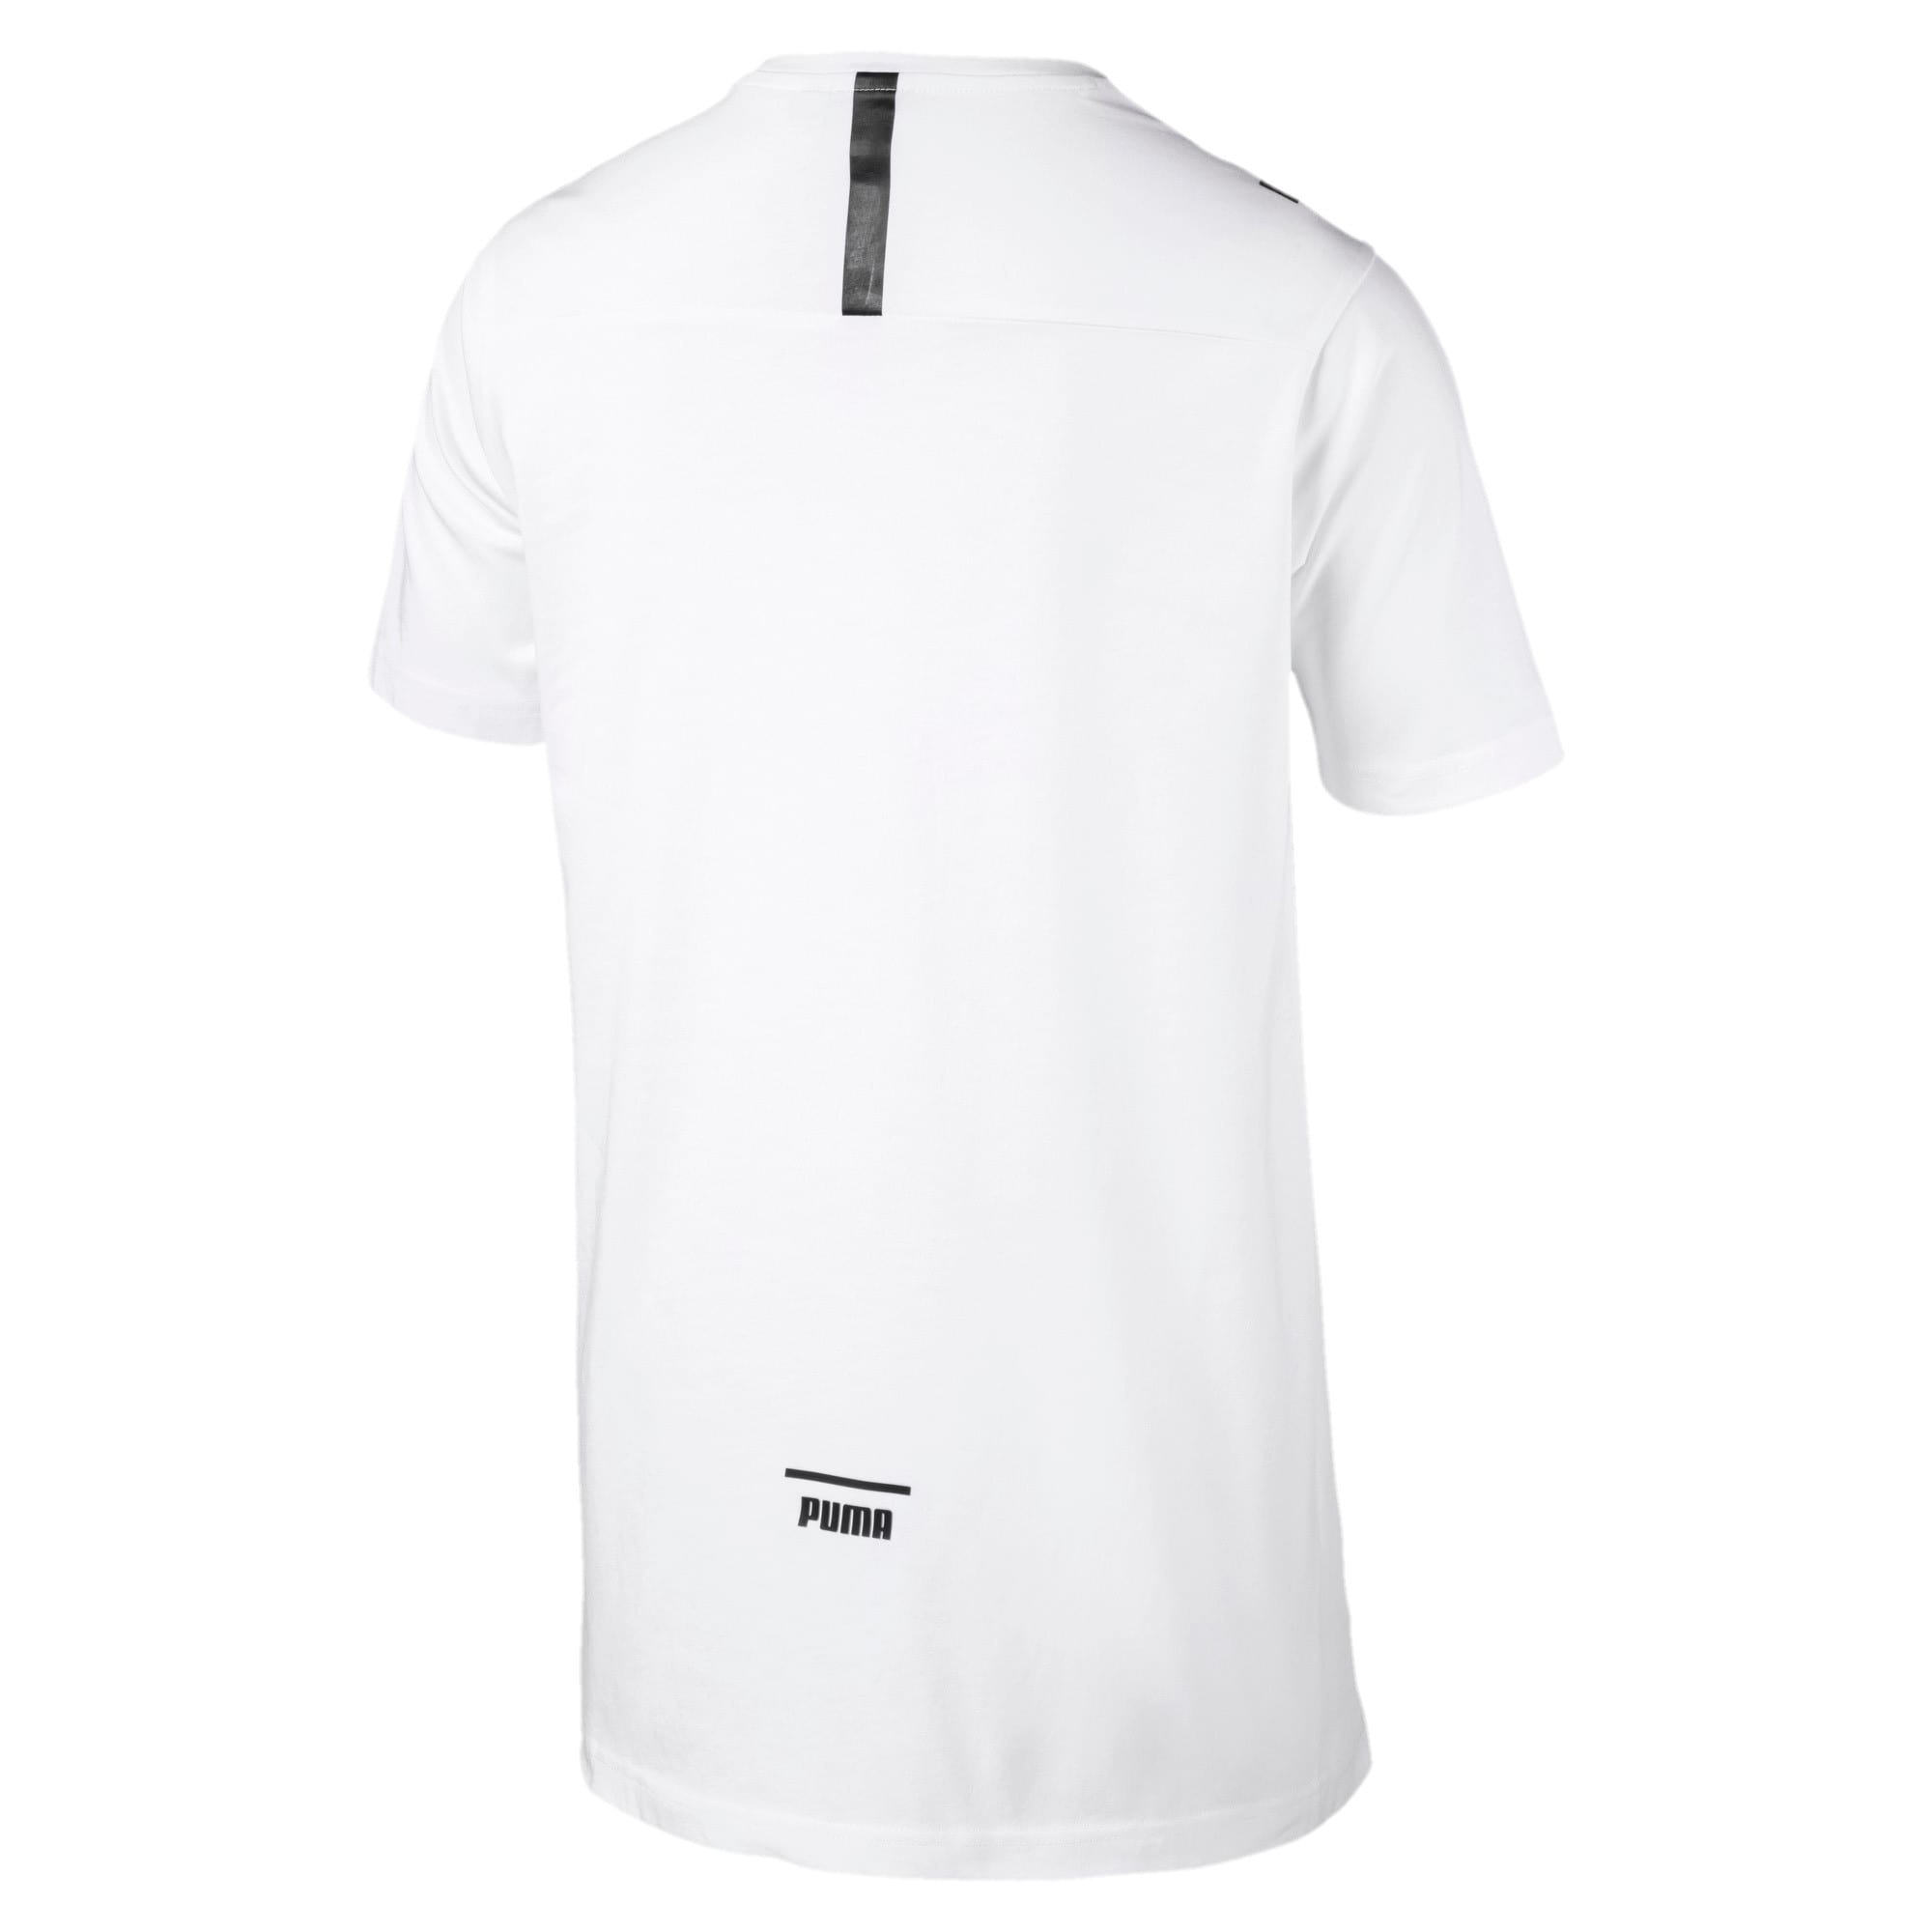 Thumbnail 5 of Pace Men's Tee, Puma White, medium-IND